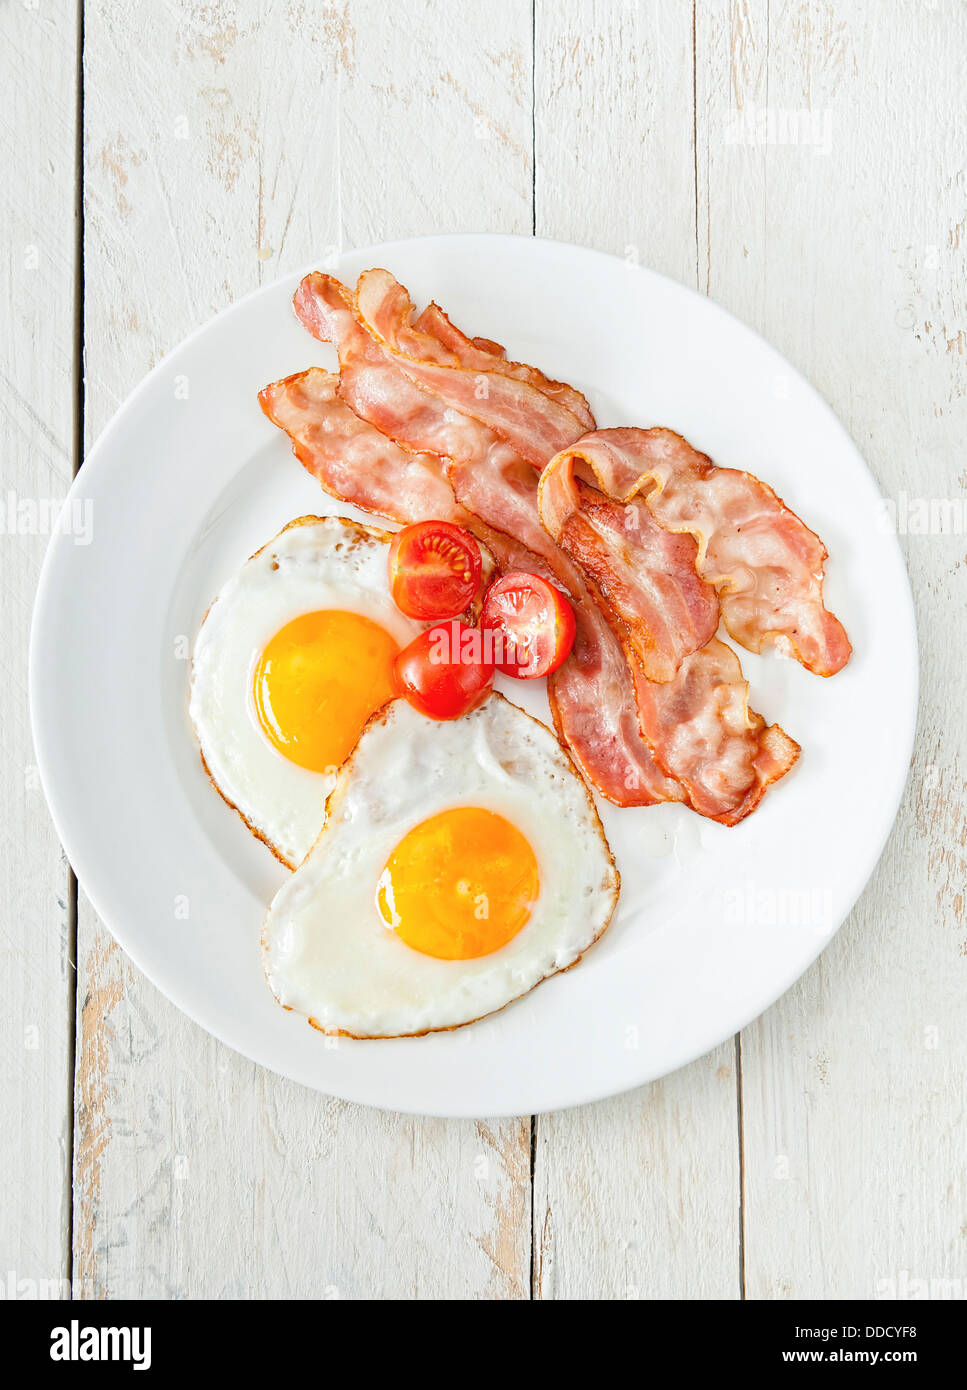 Eggs and bacon with tomato for breakfast - Stock Image